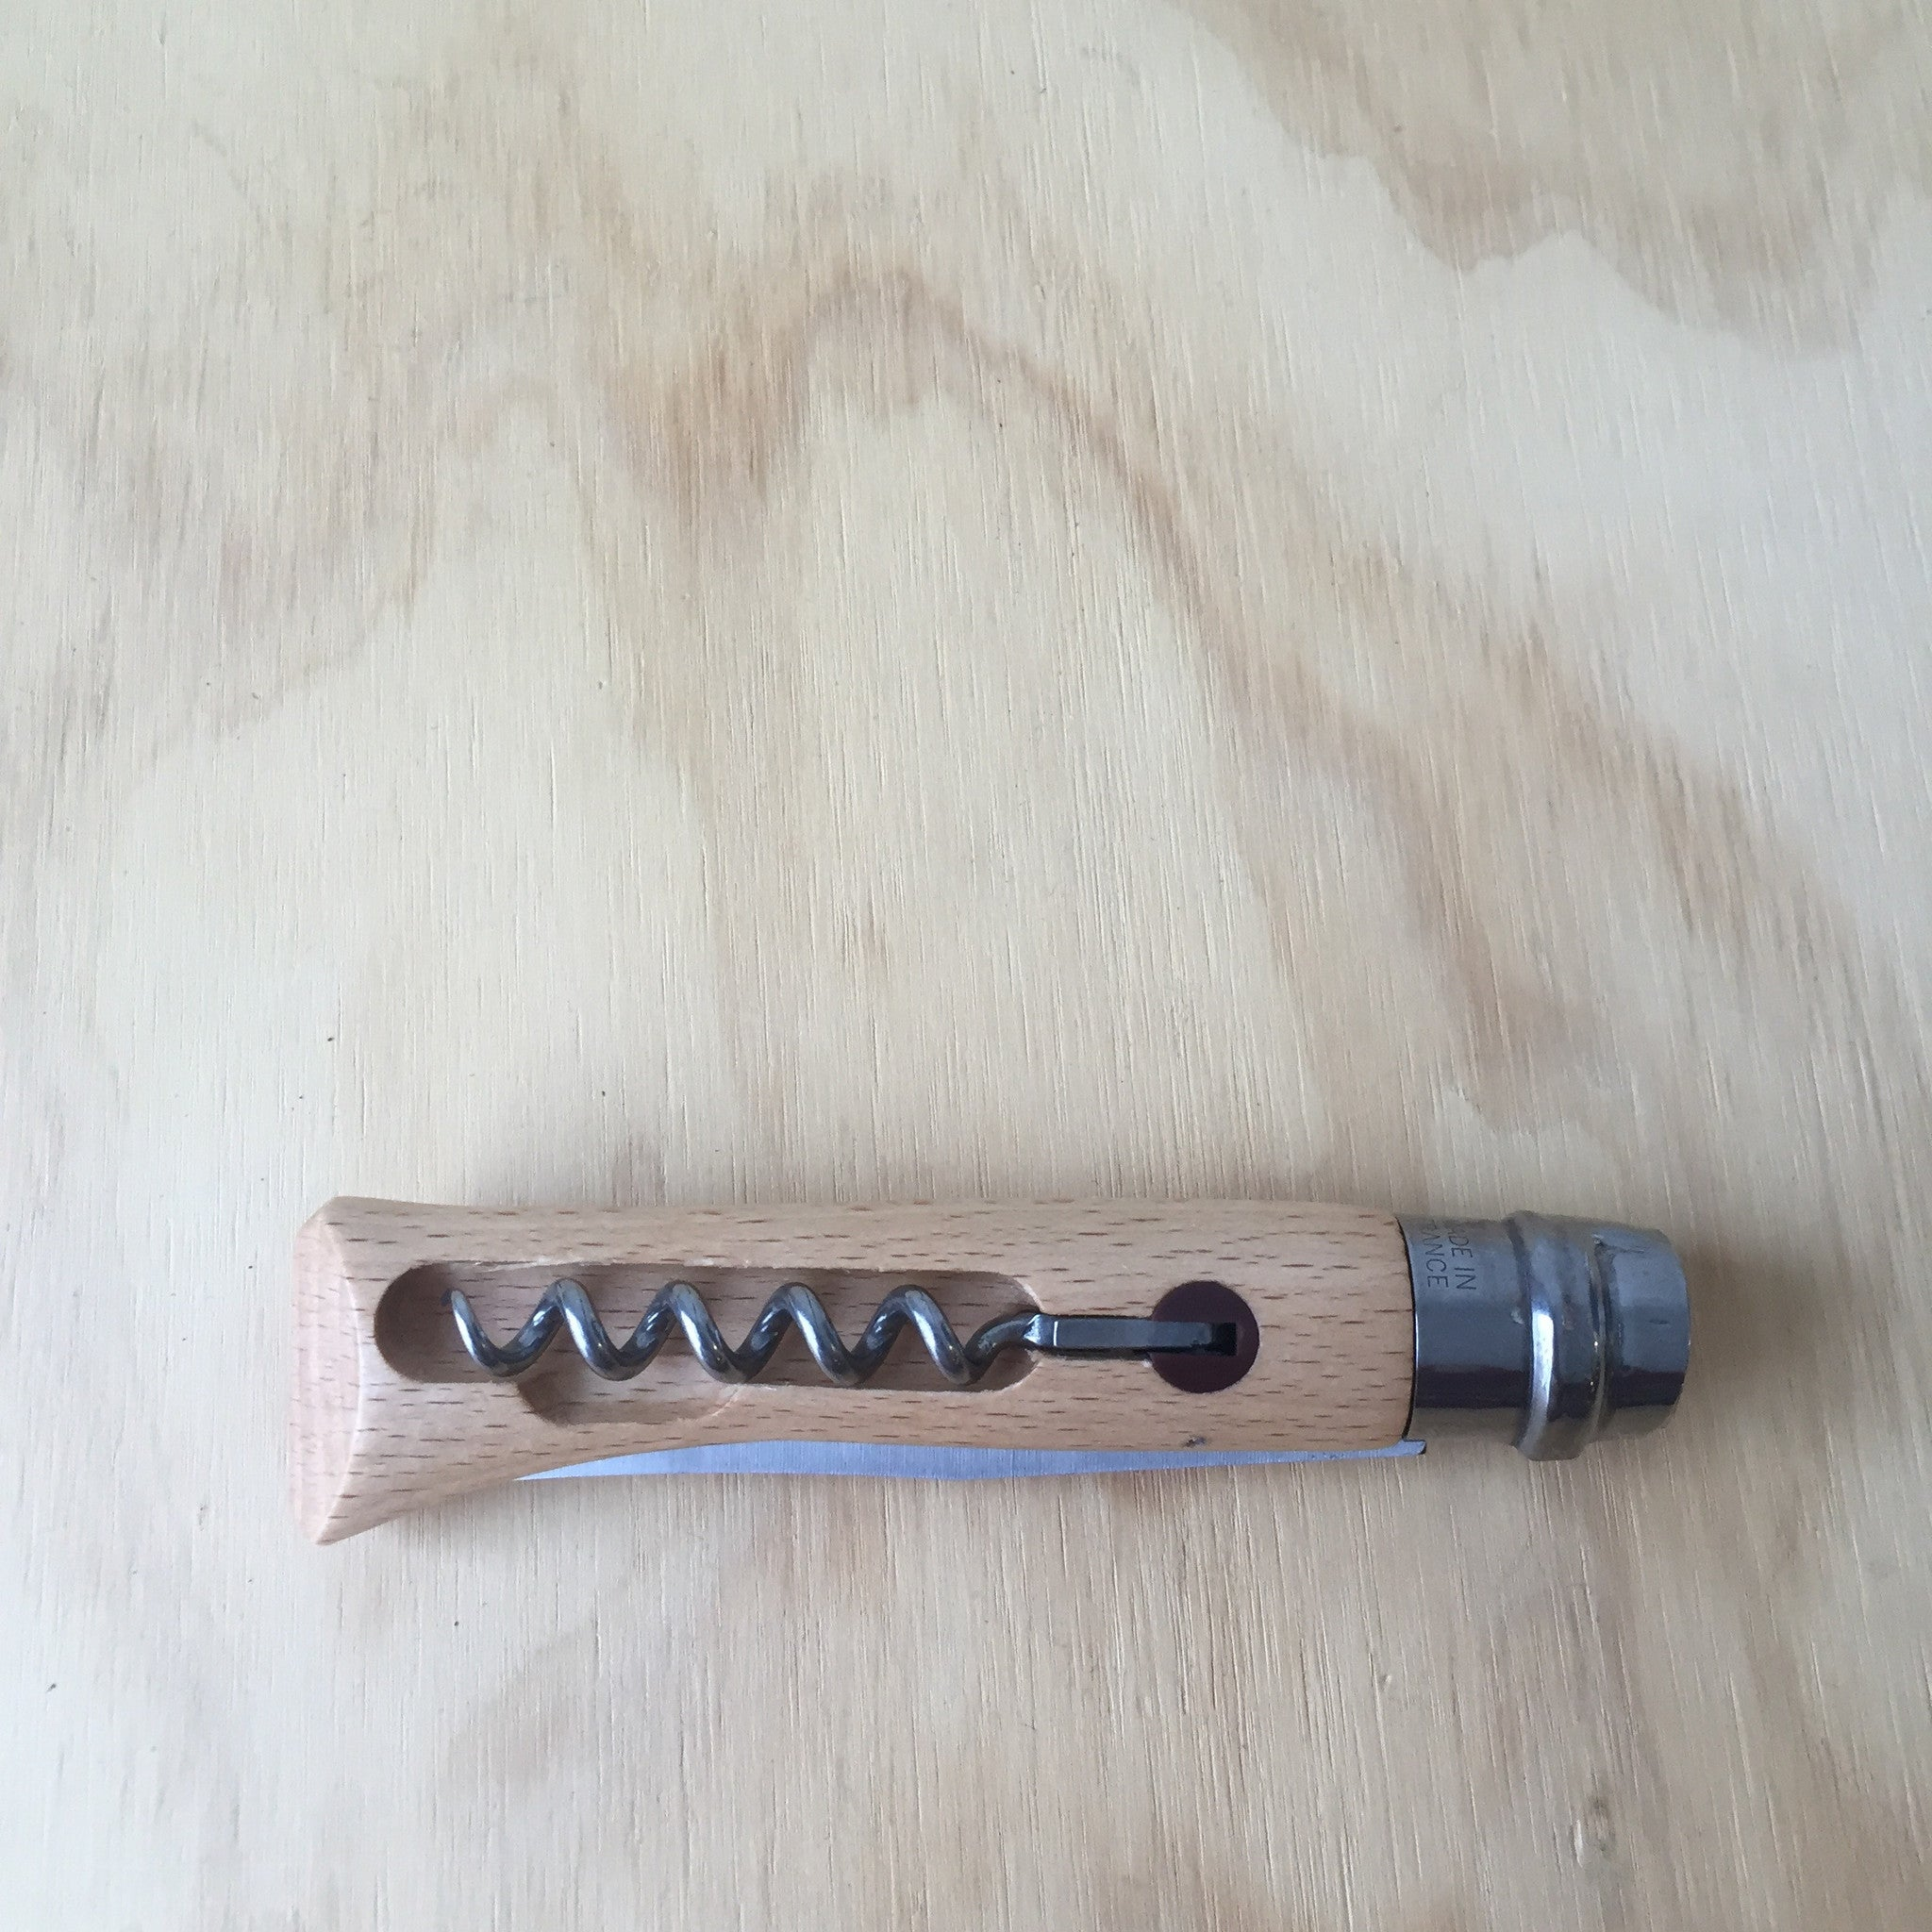 Opinel No. 10 Knife and Corkscrew